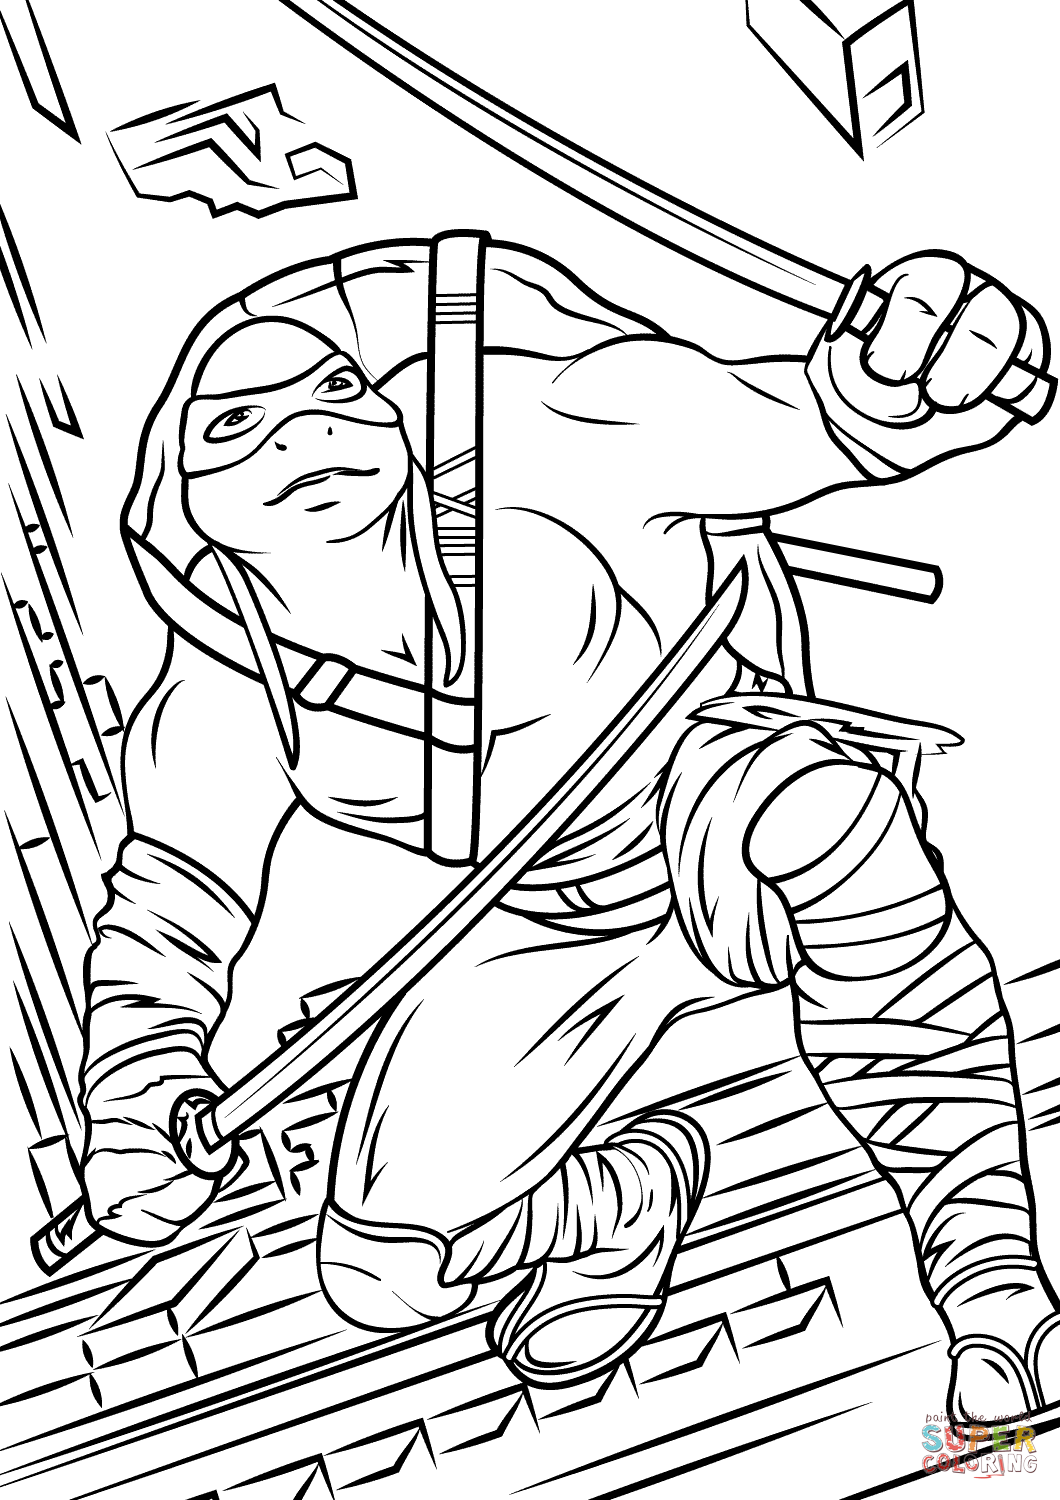 Ninja Turtle Coloring Pages For Toddlers At Getdrawings Com